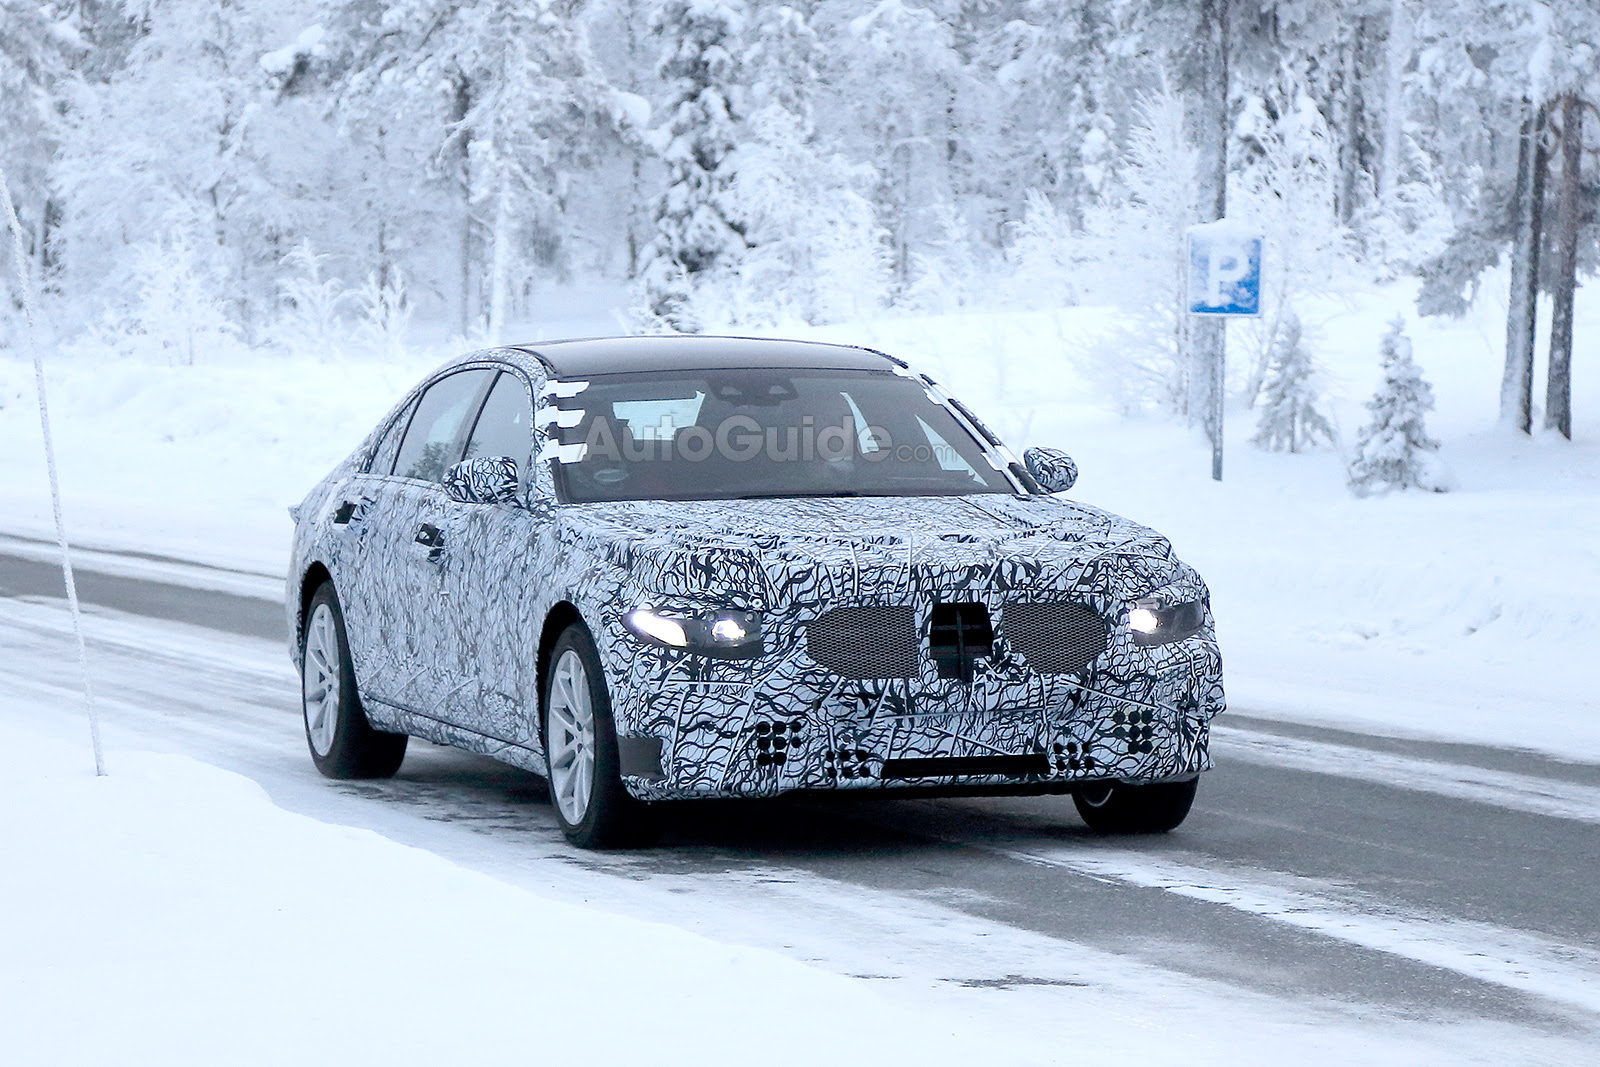 2021 Mercedes-Benz S-Class Breaks Cover While Cold Weather ...